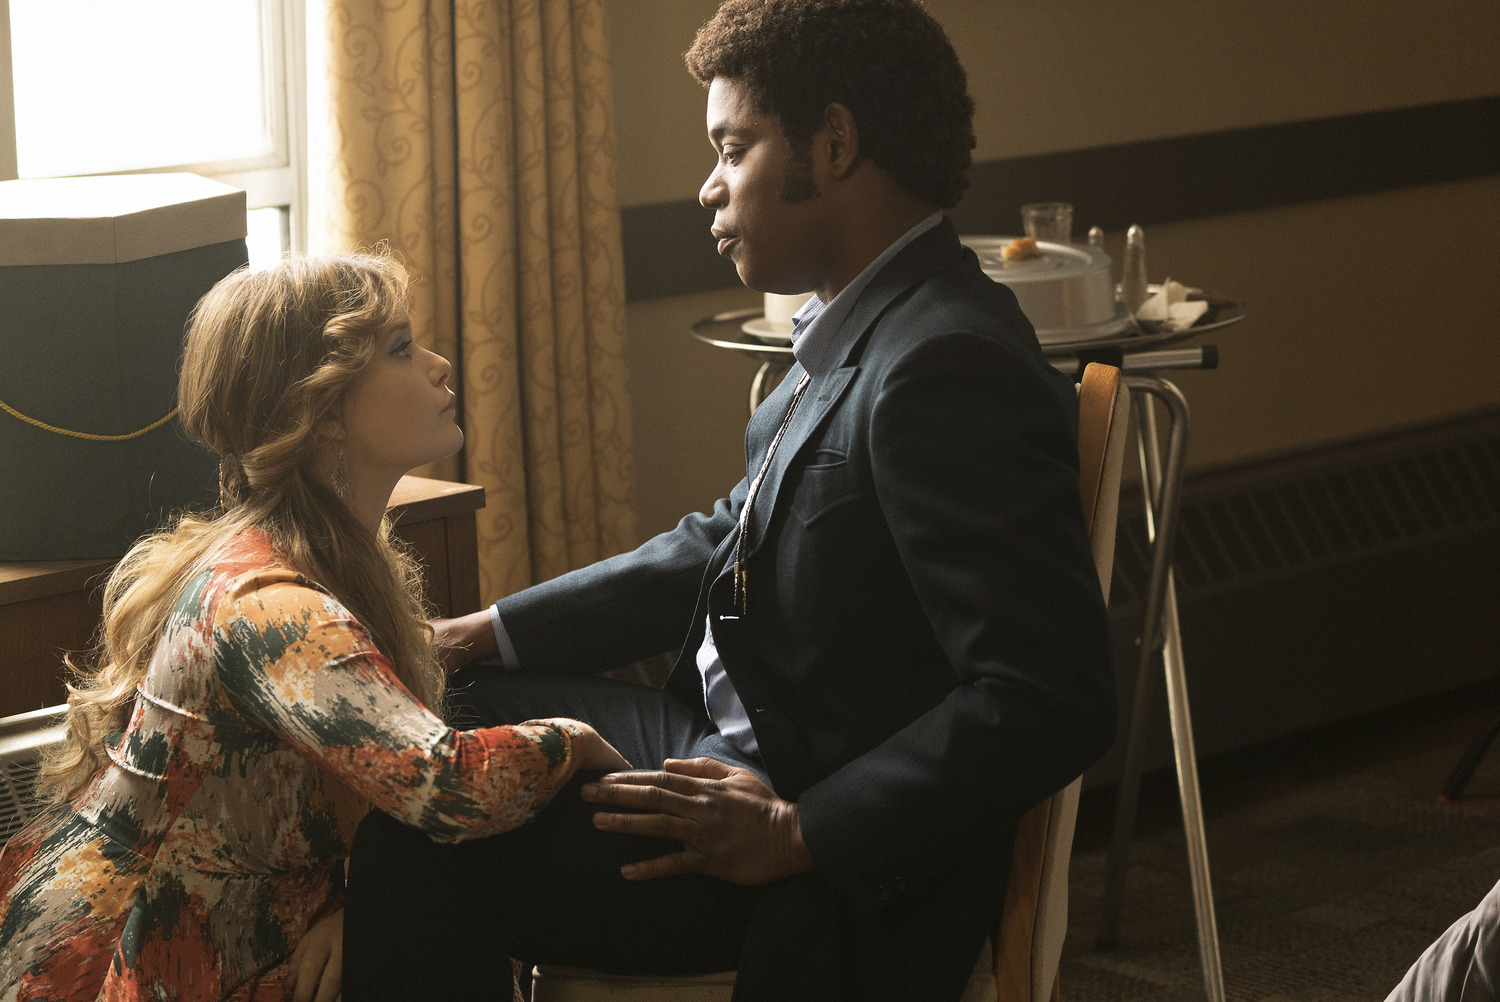 Bokeem Woodbine and Rachel Keller in Fargo (2014)